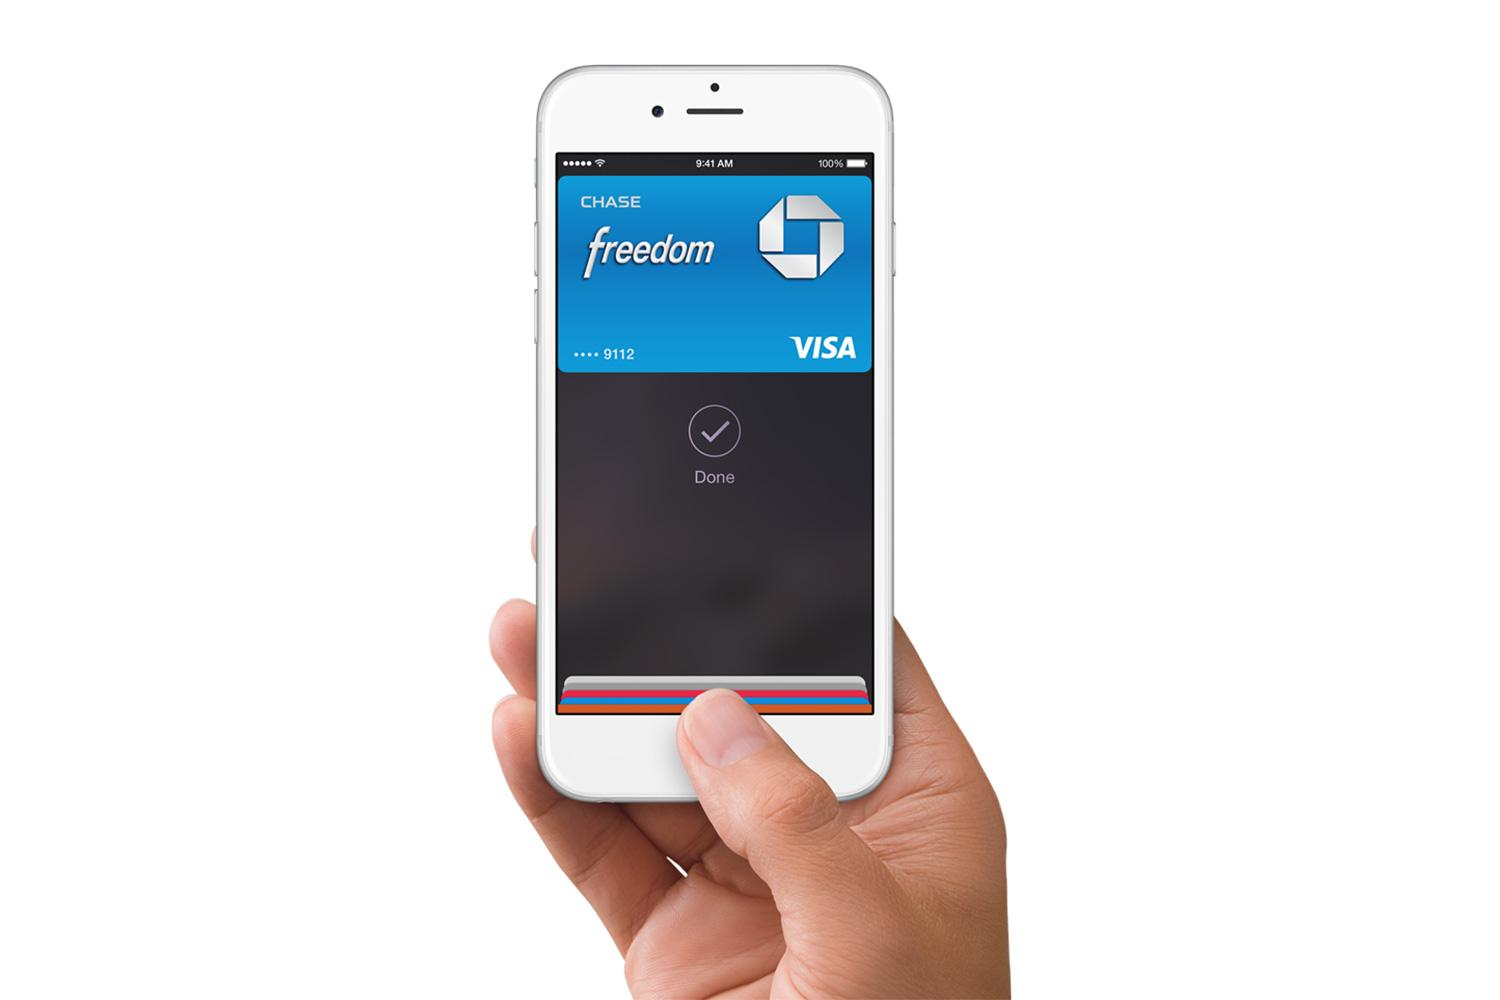 iphone 6 nfc apple confirms iphone 6 nfc chip is only for apple pay 11370